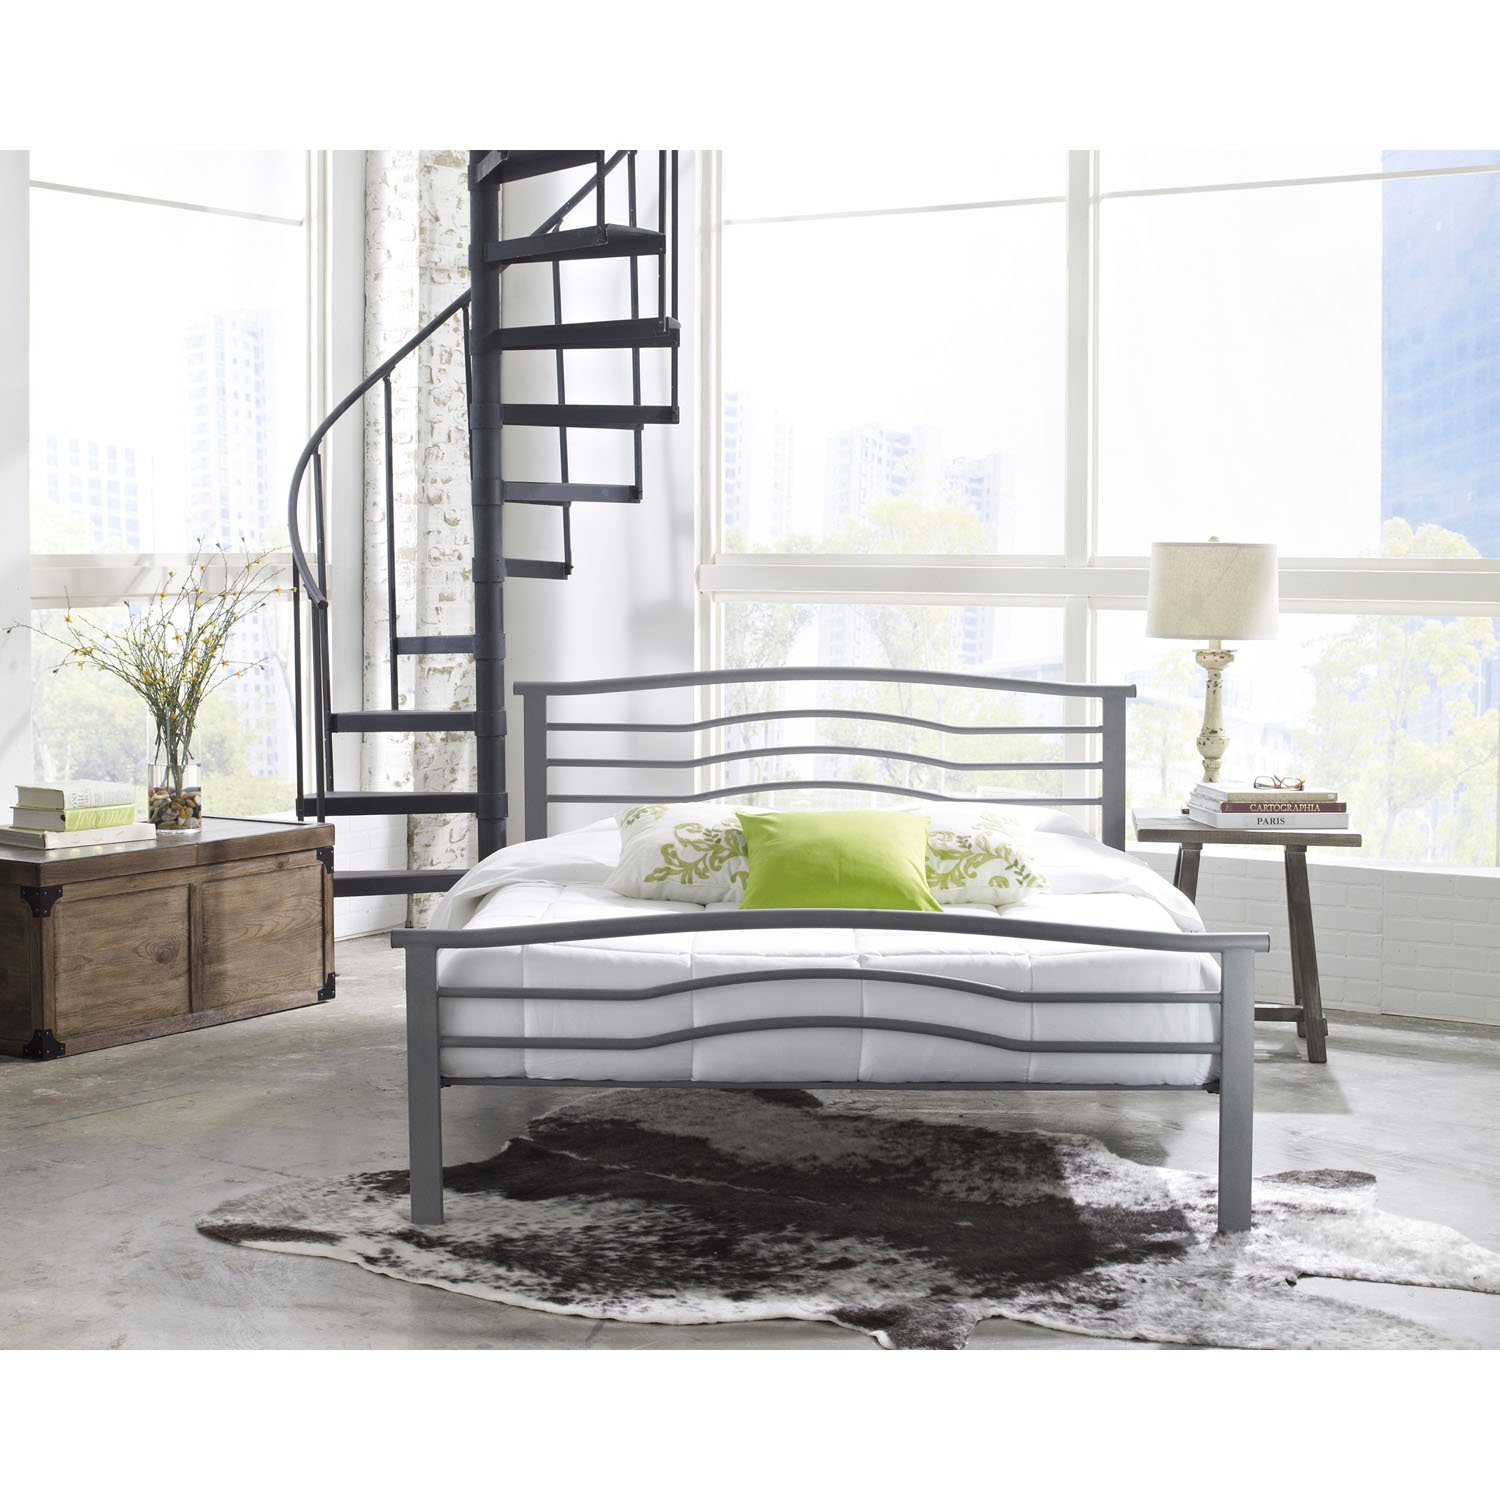 double stylish bed frames mattress full queen size platform of furniture bedroom storage low frame in with way white and